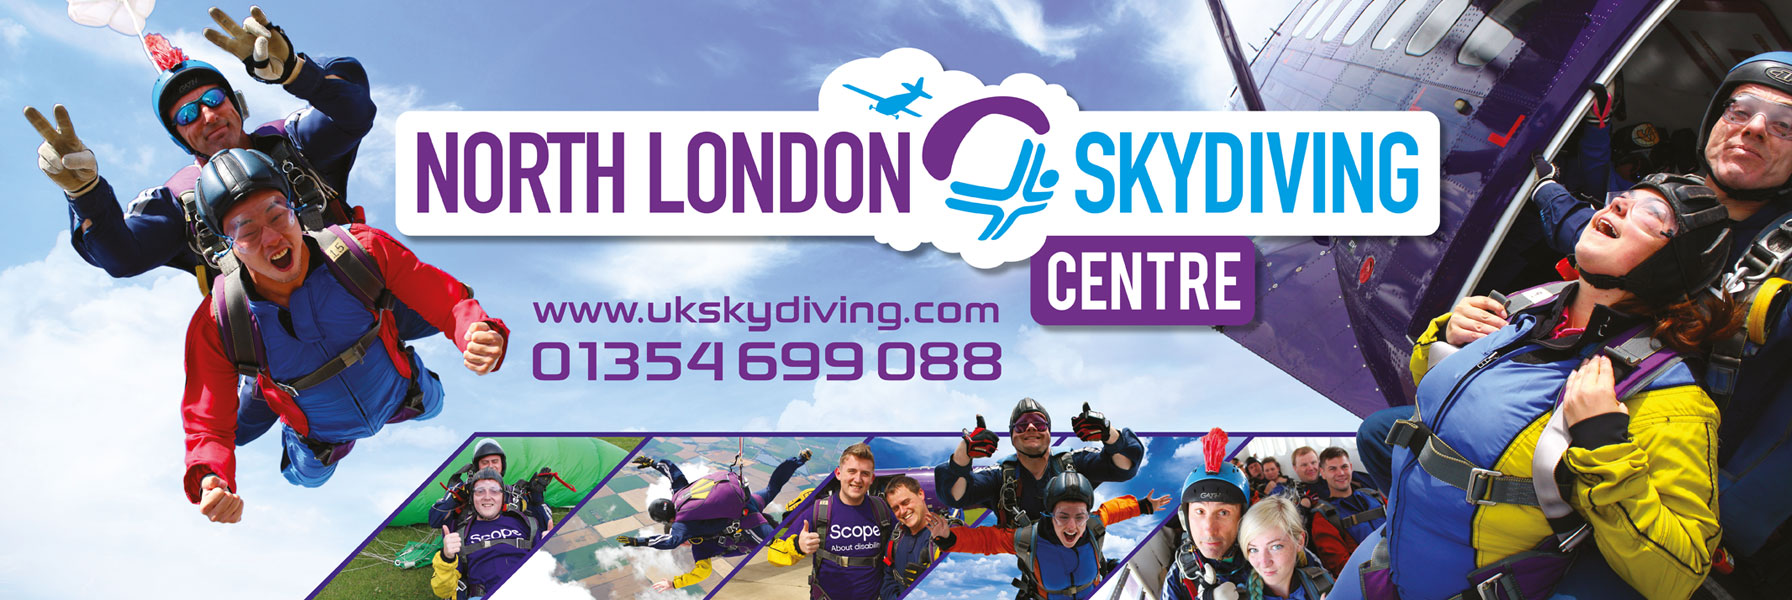 North London Skydiving website banner advertisement